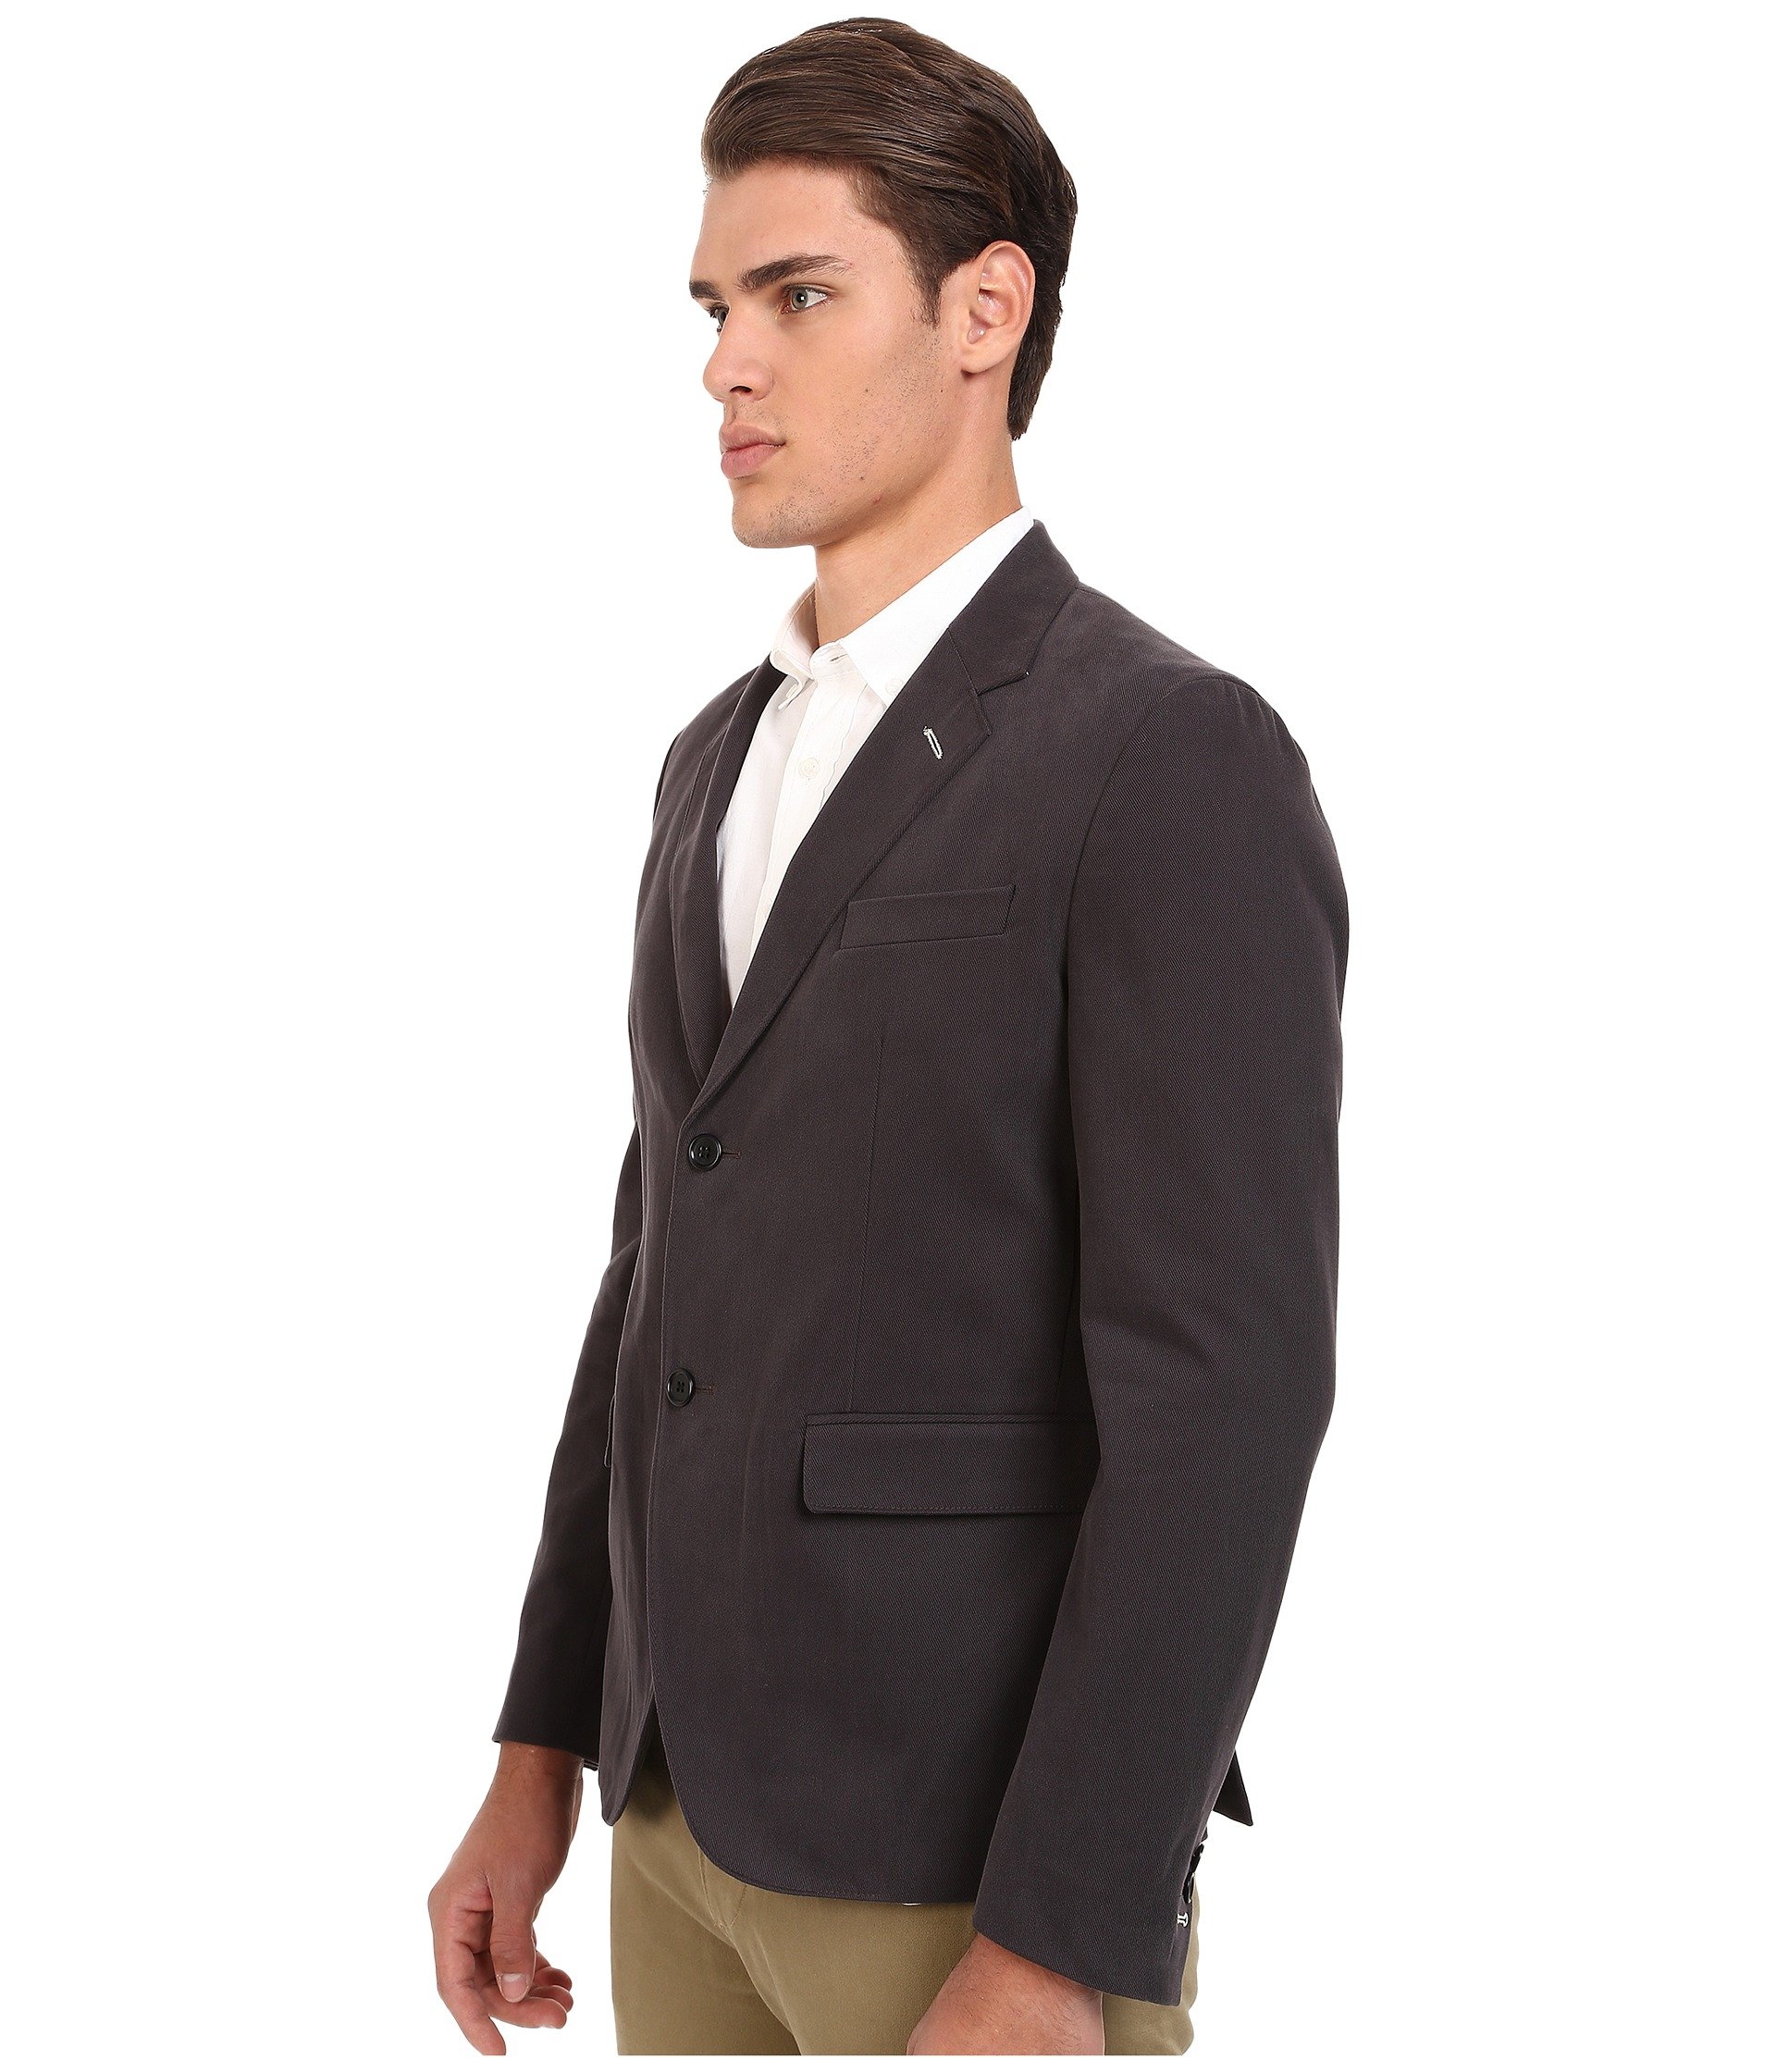 Gant Rugger R Twill Blazer Dark Graphite Zapposcom Free Shipping BOTH Ways